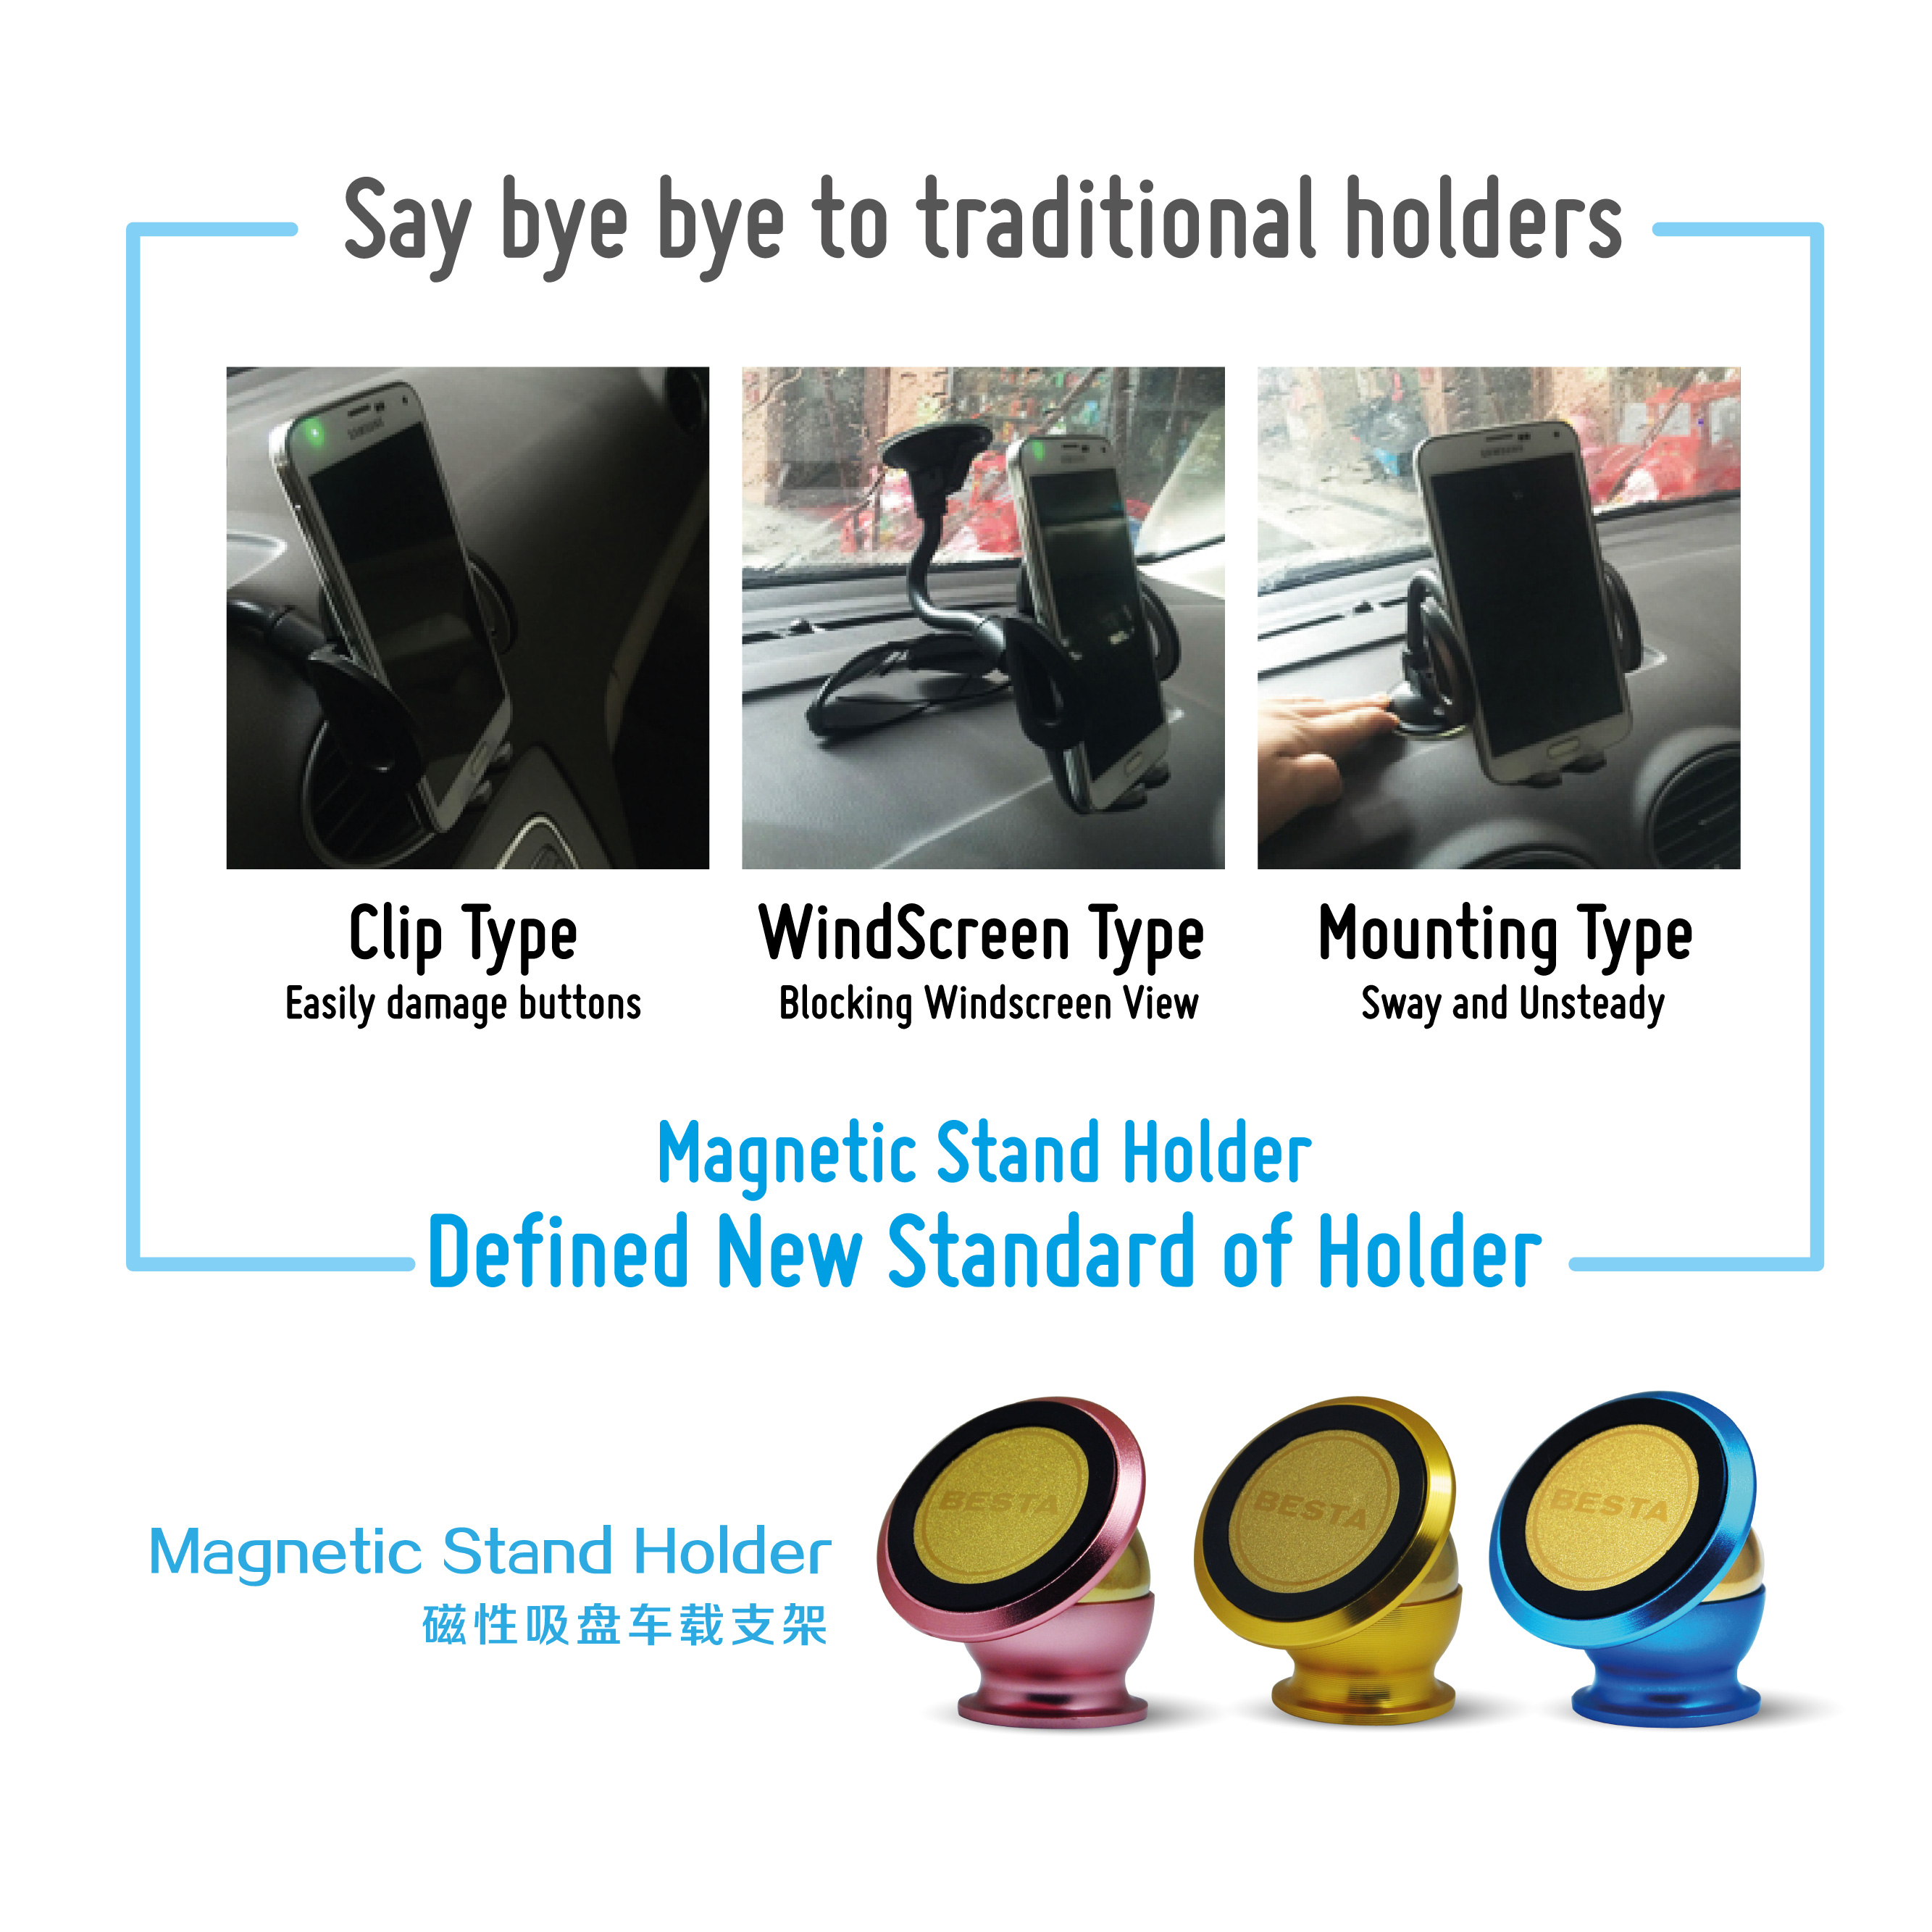 Magnetic Stand Holder